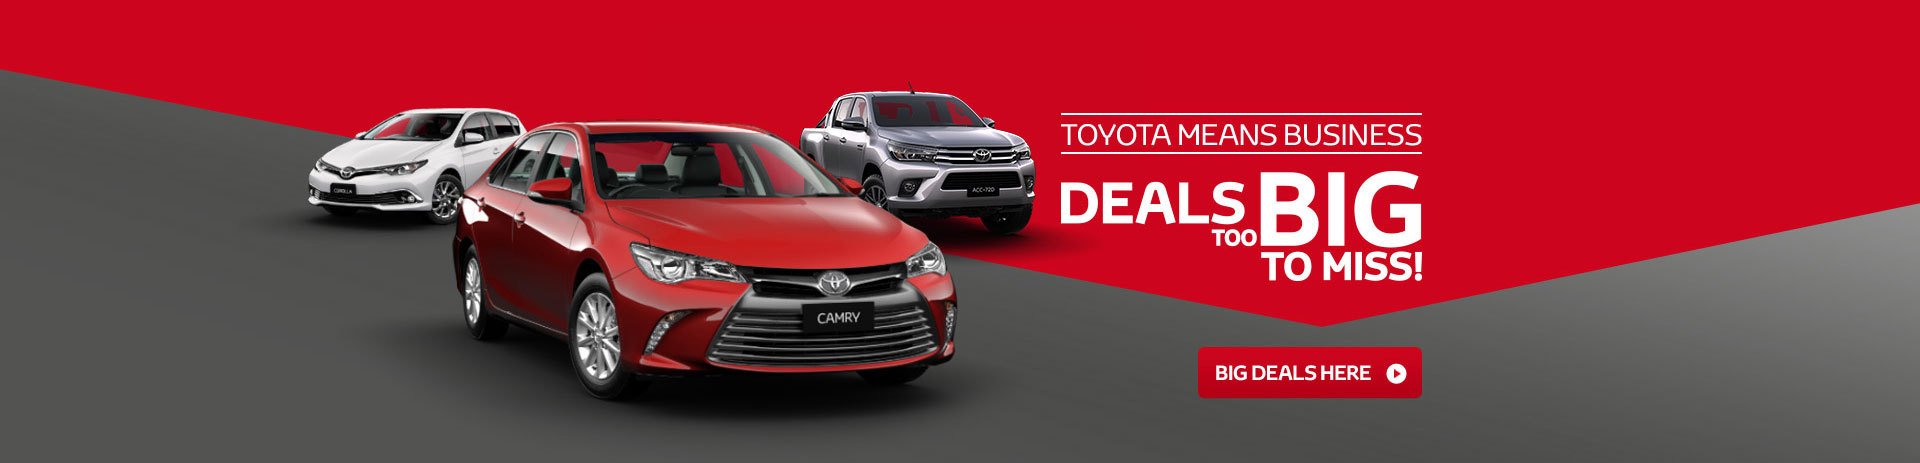 Toyota Means Business - Deals too Big to miss